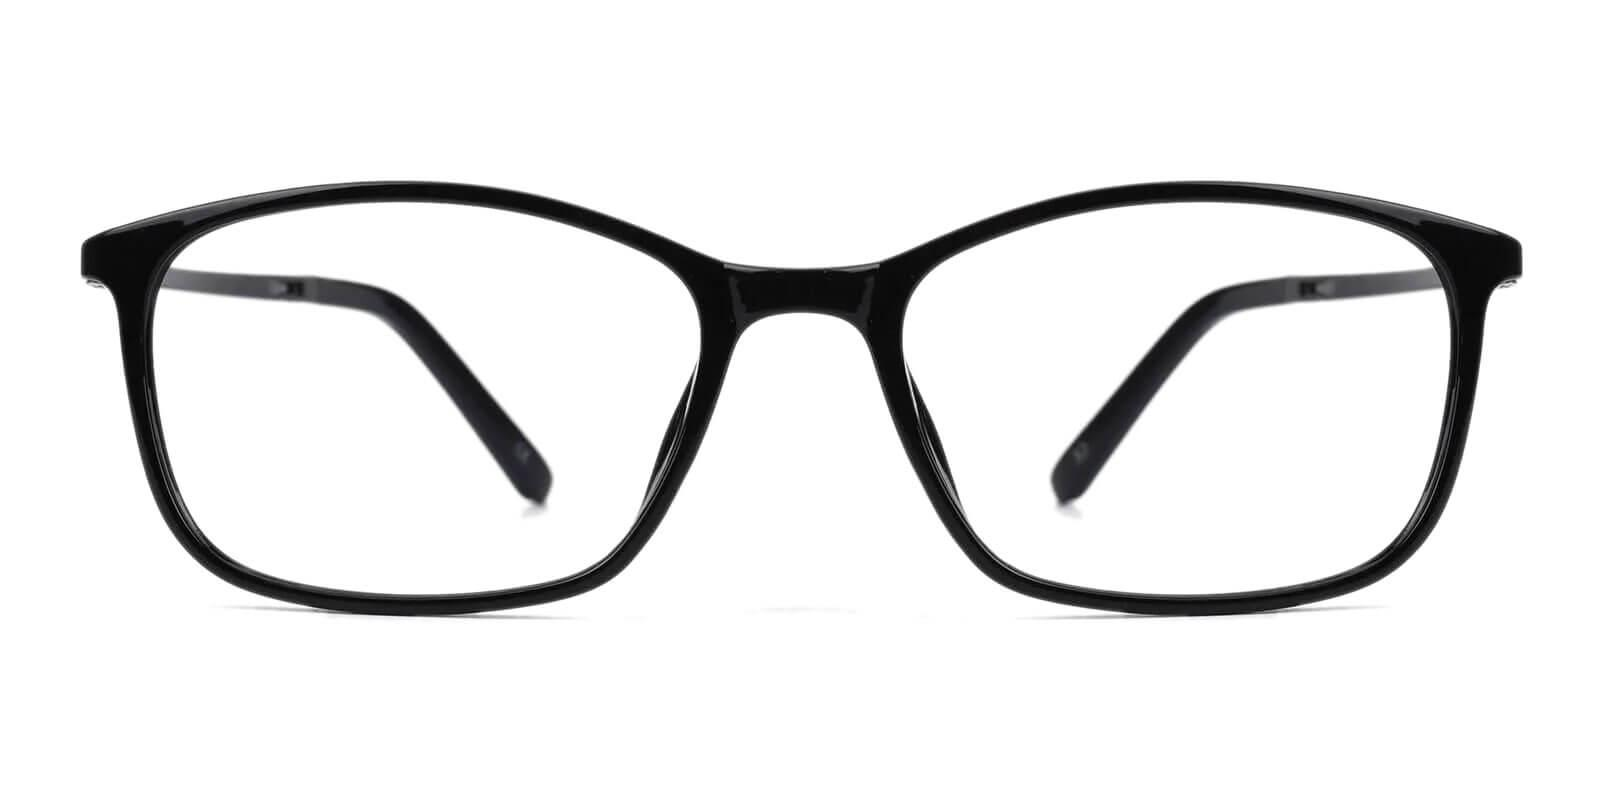 Lyric Black TR Eyeglasses , SpringHinges , UniversalBridgeFit Frames from ABBE Glasses